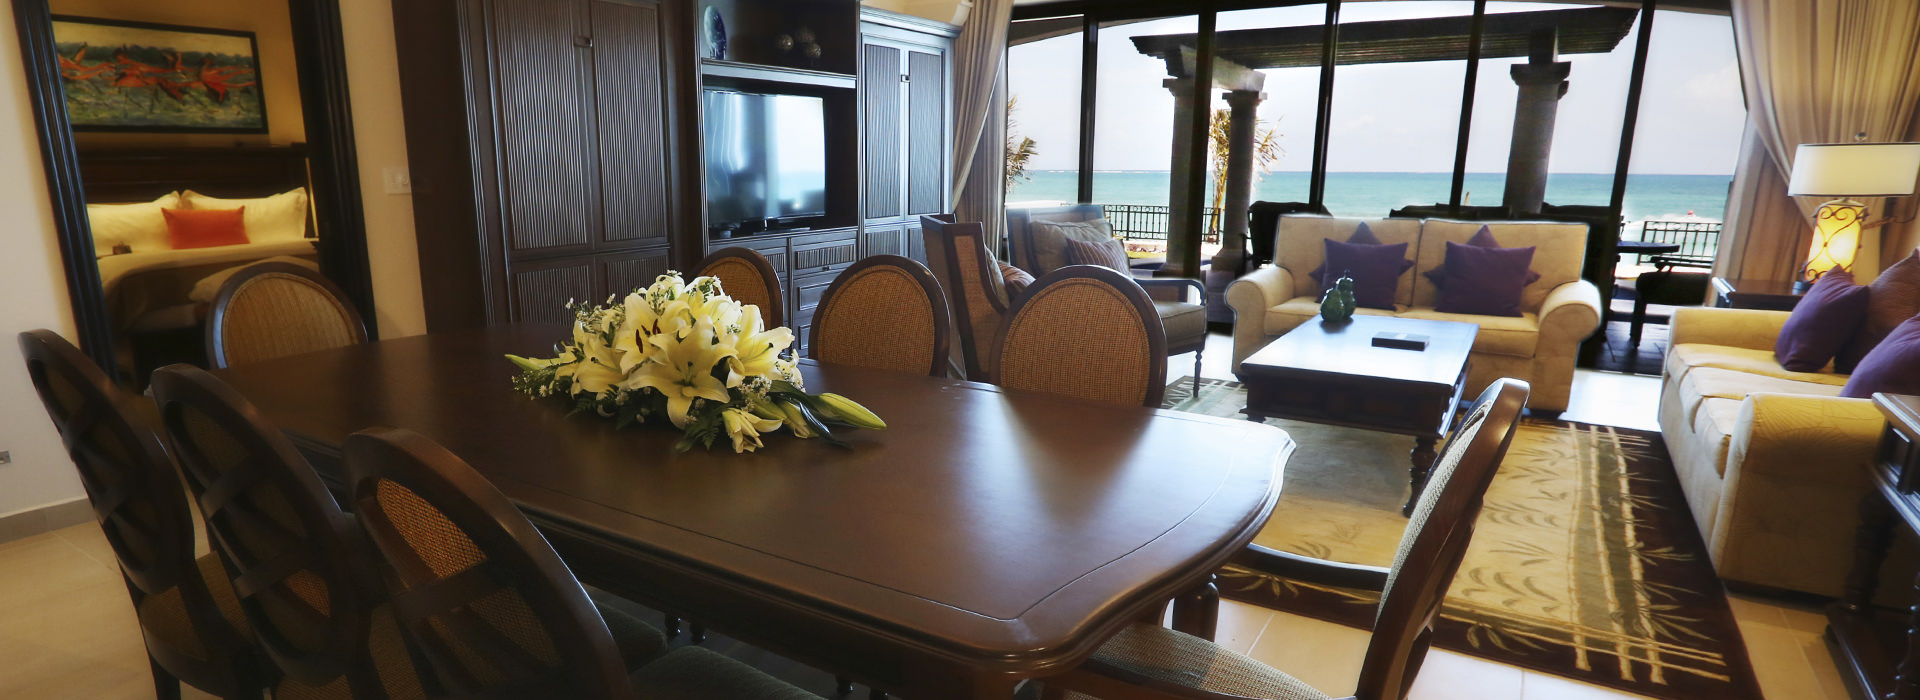 Beachfront suite in Riviera Maya resort